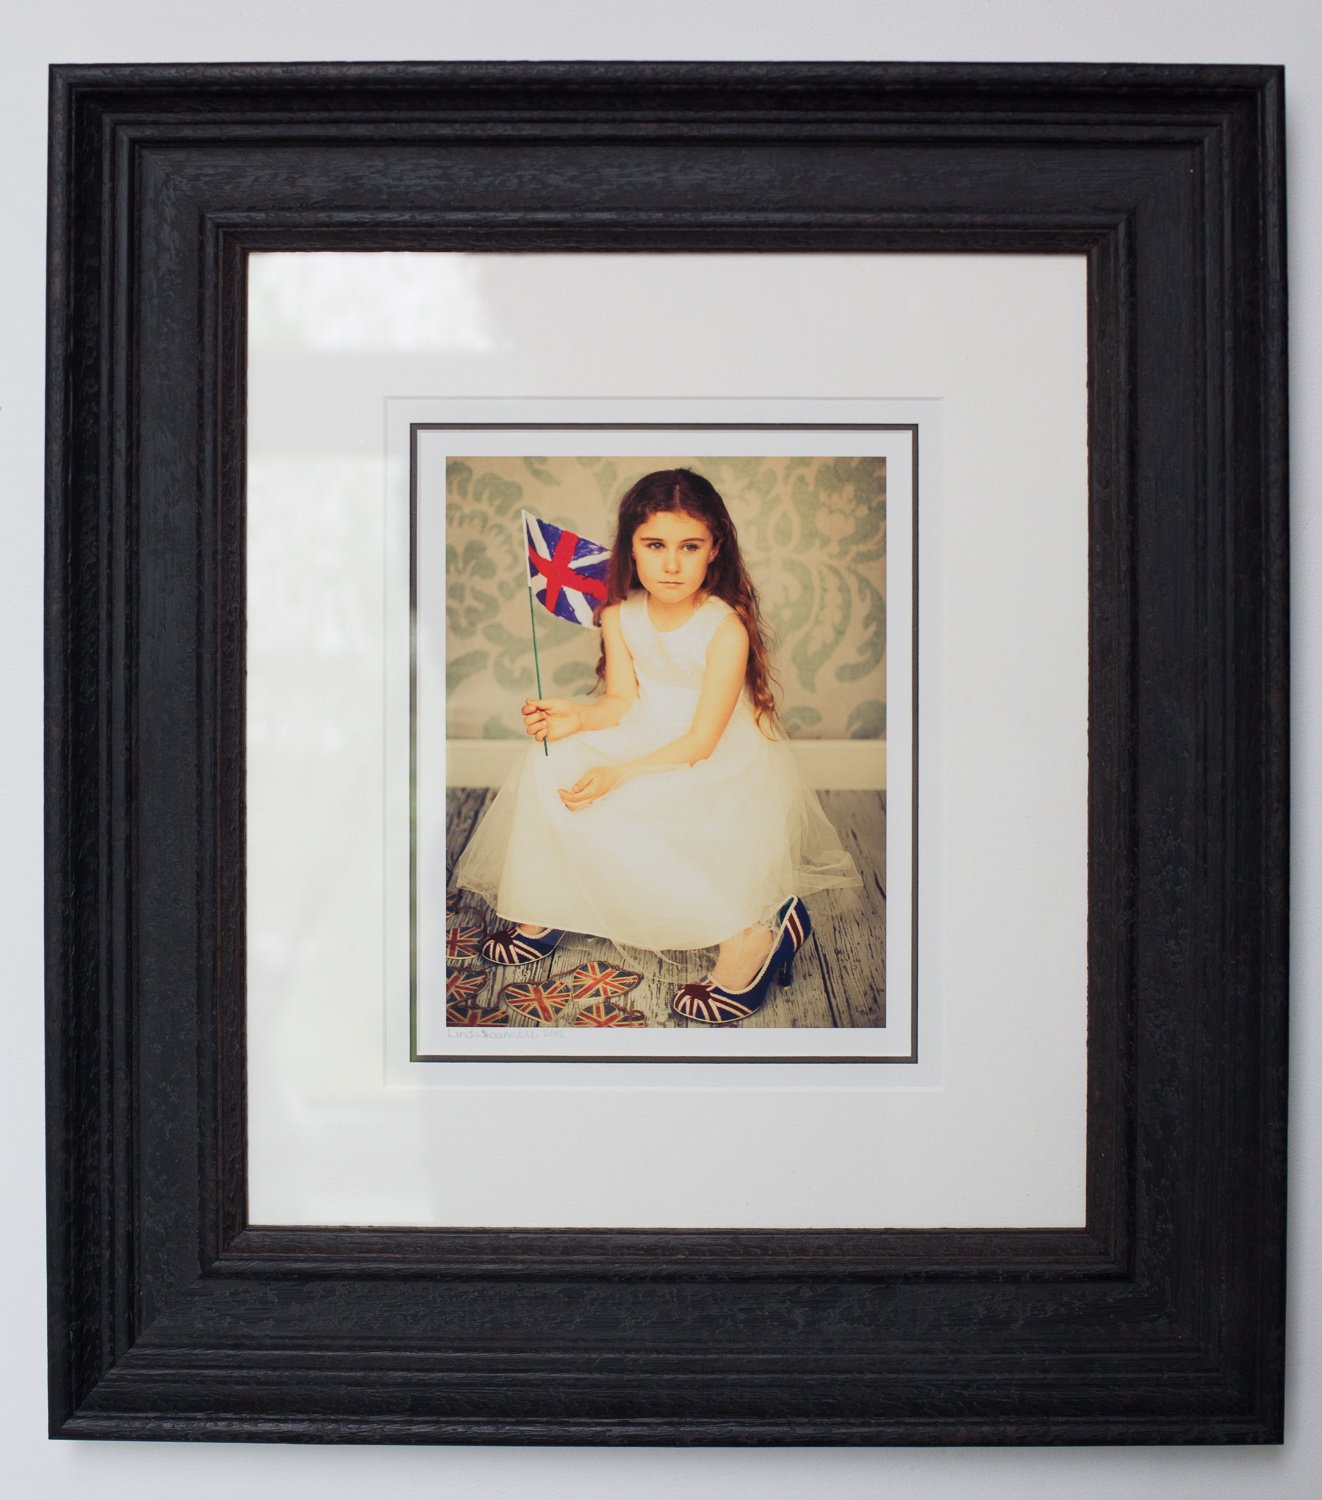 Portrait photo framed and mounted